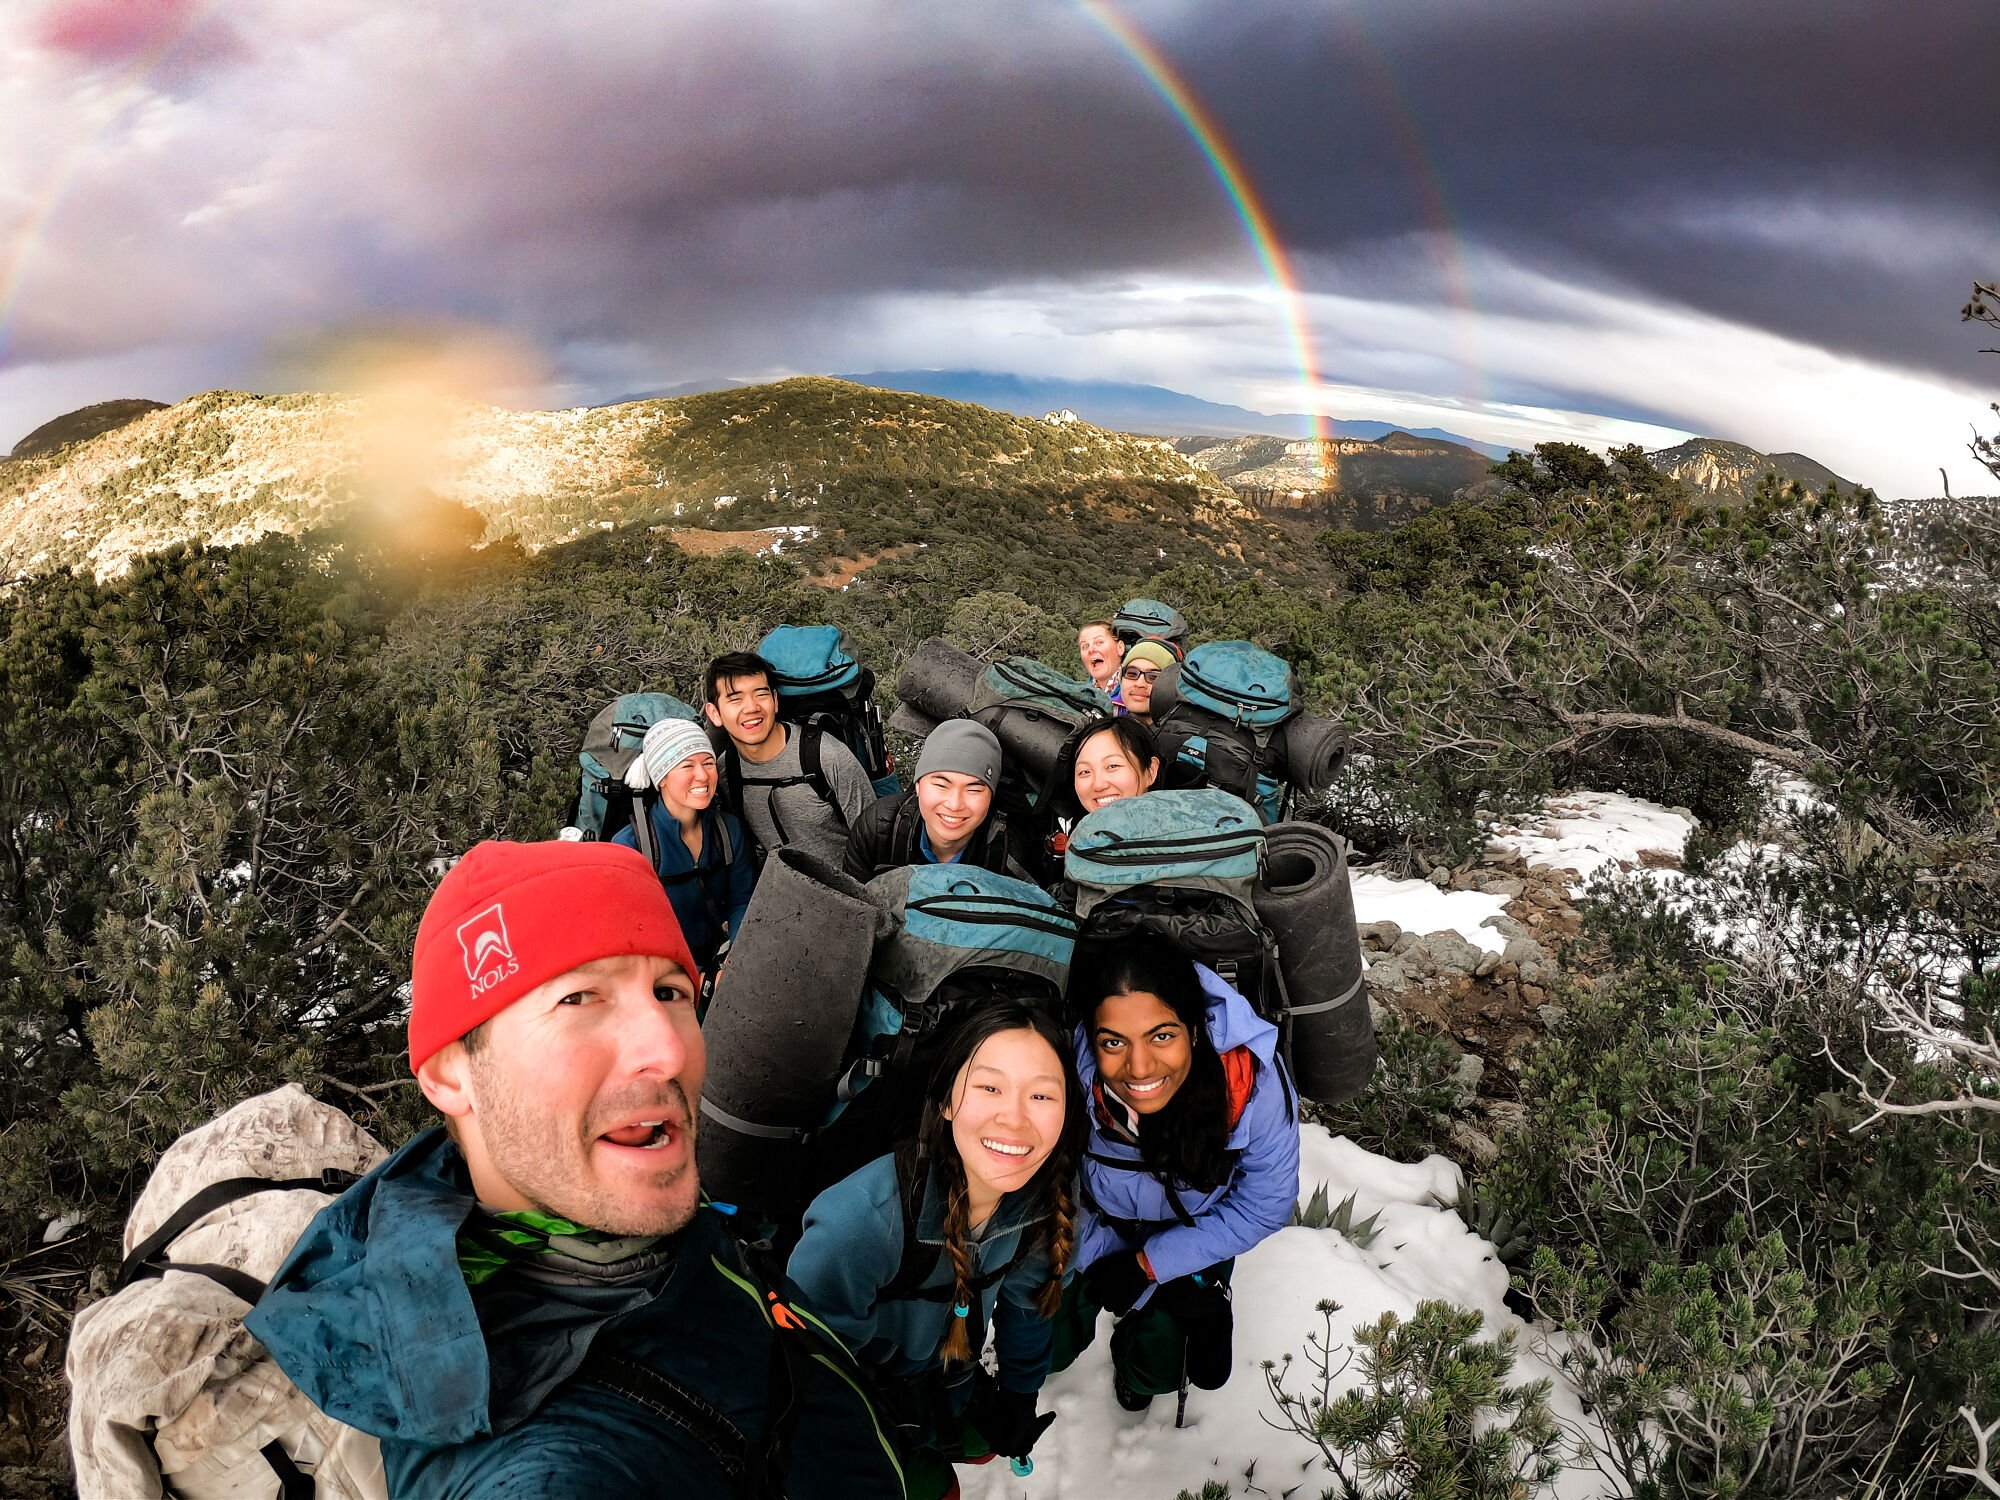 Selfie shot of a group of smiling backpackers with a rainbow in the background